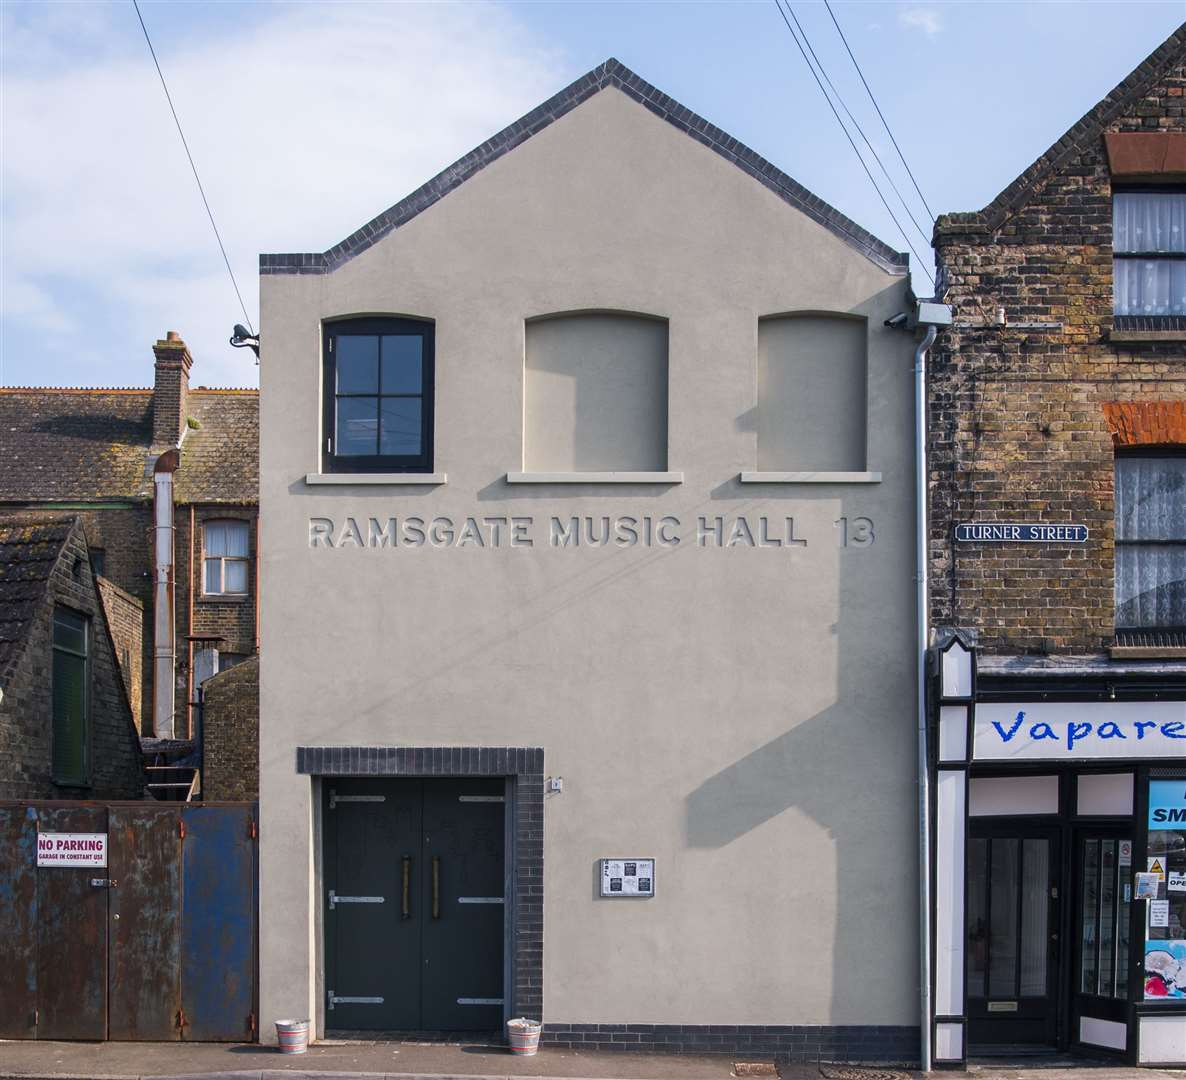 The Ramsgate Music Hall was recently awarded money from the government's Cultural Recovery Fund